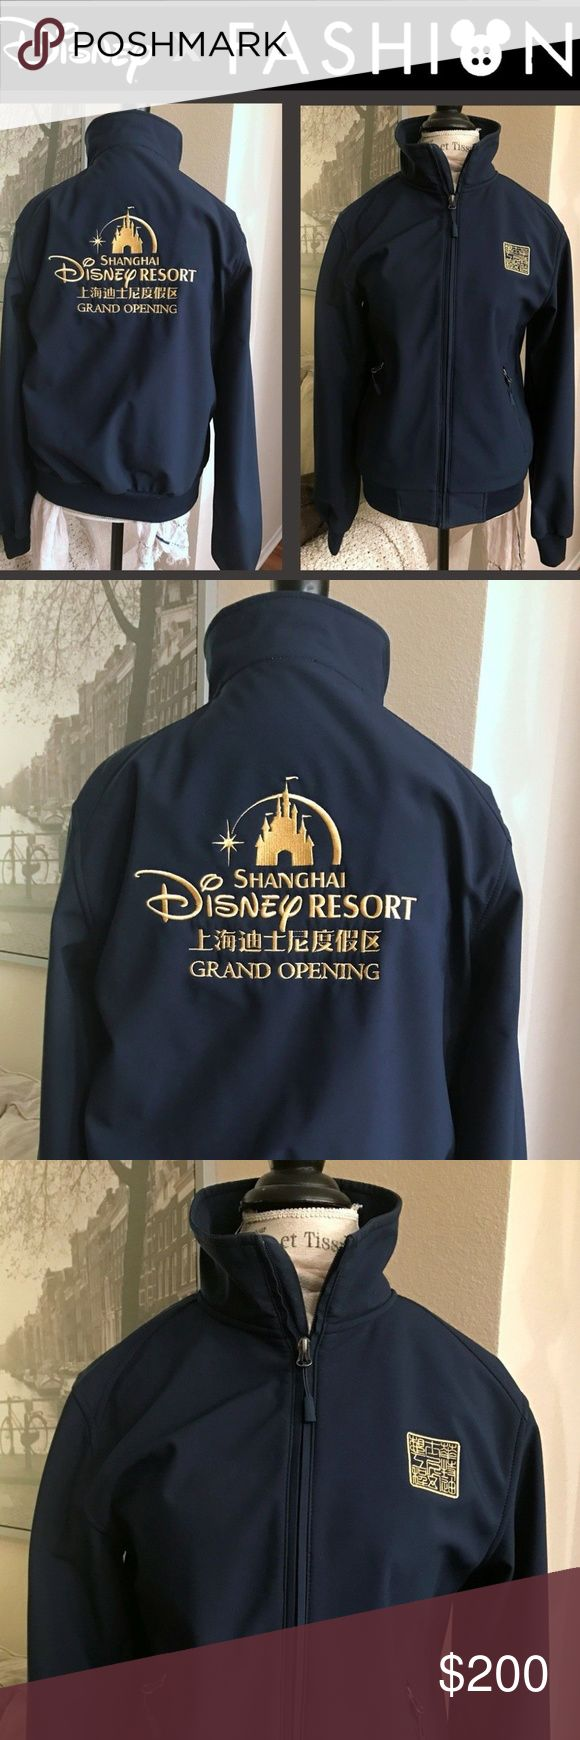 """Exclusive Shanghai Disney Grand Opening Jacket LIMITED EDITION *SHANGHAI DISNEY RESORT GRAND OPENING JACKET*  Disney Imagineering Exclusive Merchandise - Shanghai Disneyland Grand Opening Collector's Item  Size: Uni-Sex Adult Small  Condition: New without tags  Color: Navy Blue with Gold detail  Manufacturer: Port Authority  Materials: Warm fleece inside and 100% Polyester outside  Measurements:  Length (from shoulder to bottom) approx 25"""" From arm-pit to arm-pit approx 19.5"""" Sleeve length…"""